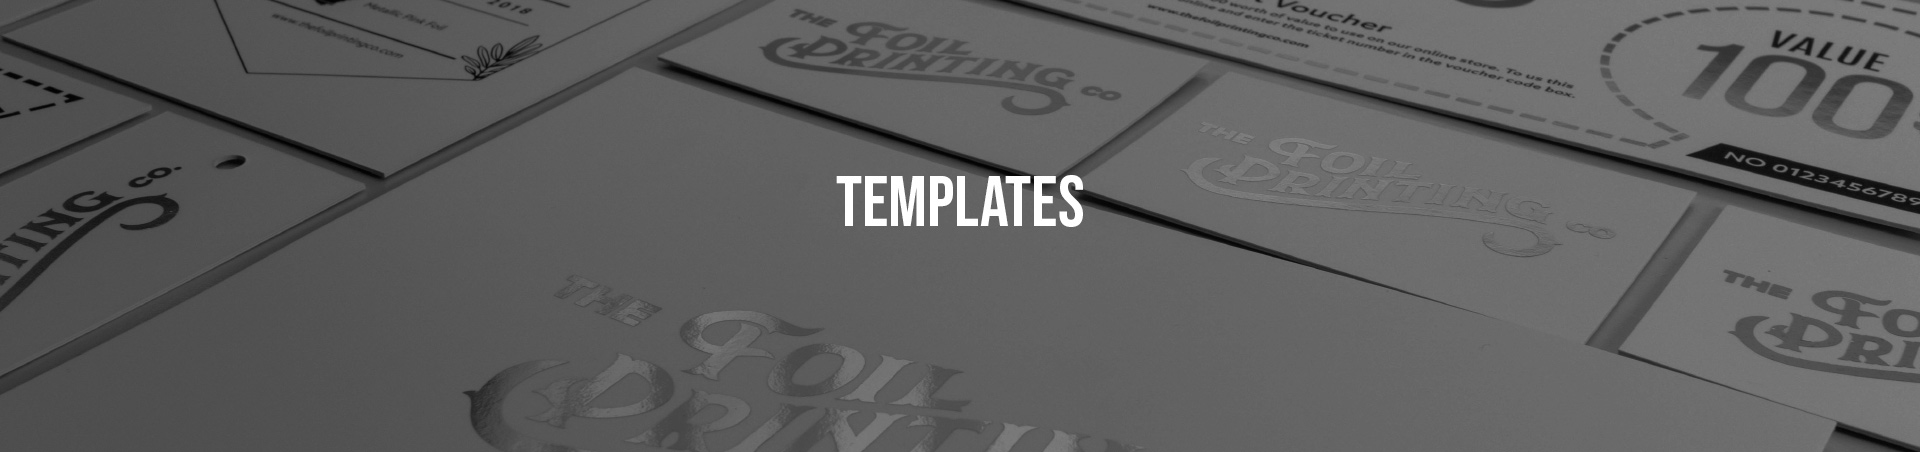 Templates Banner